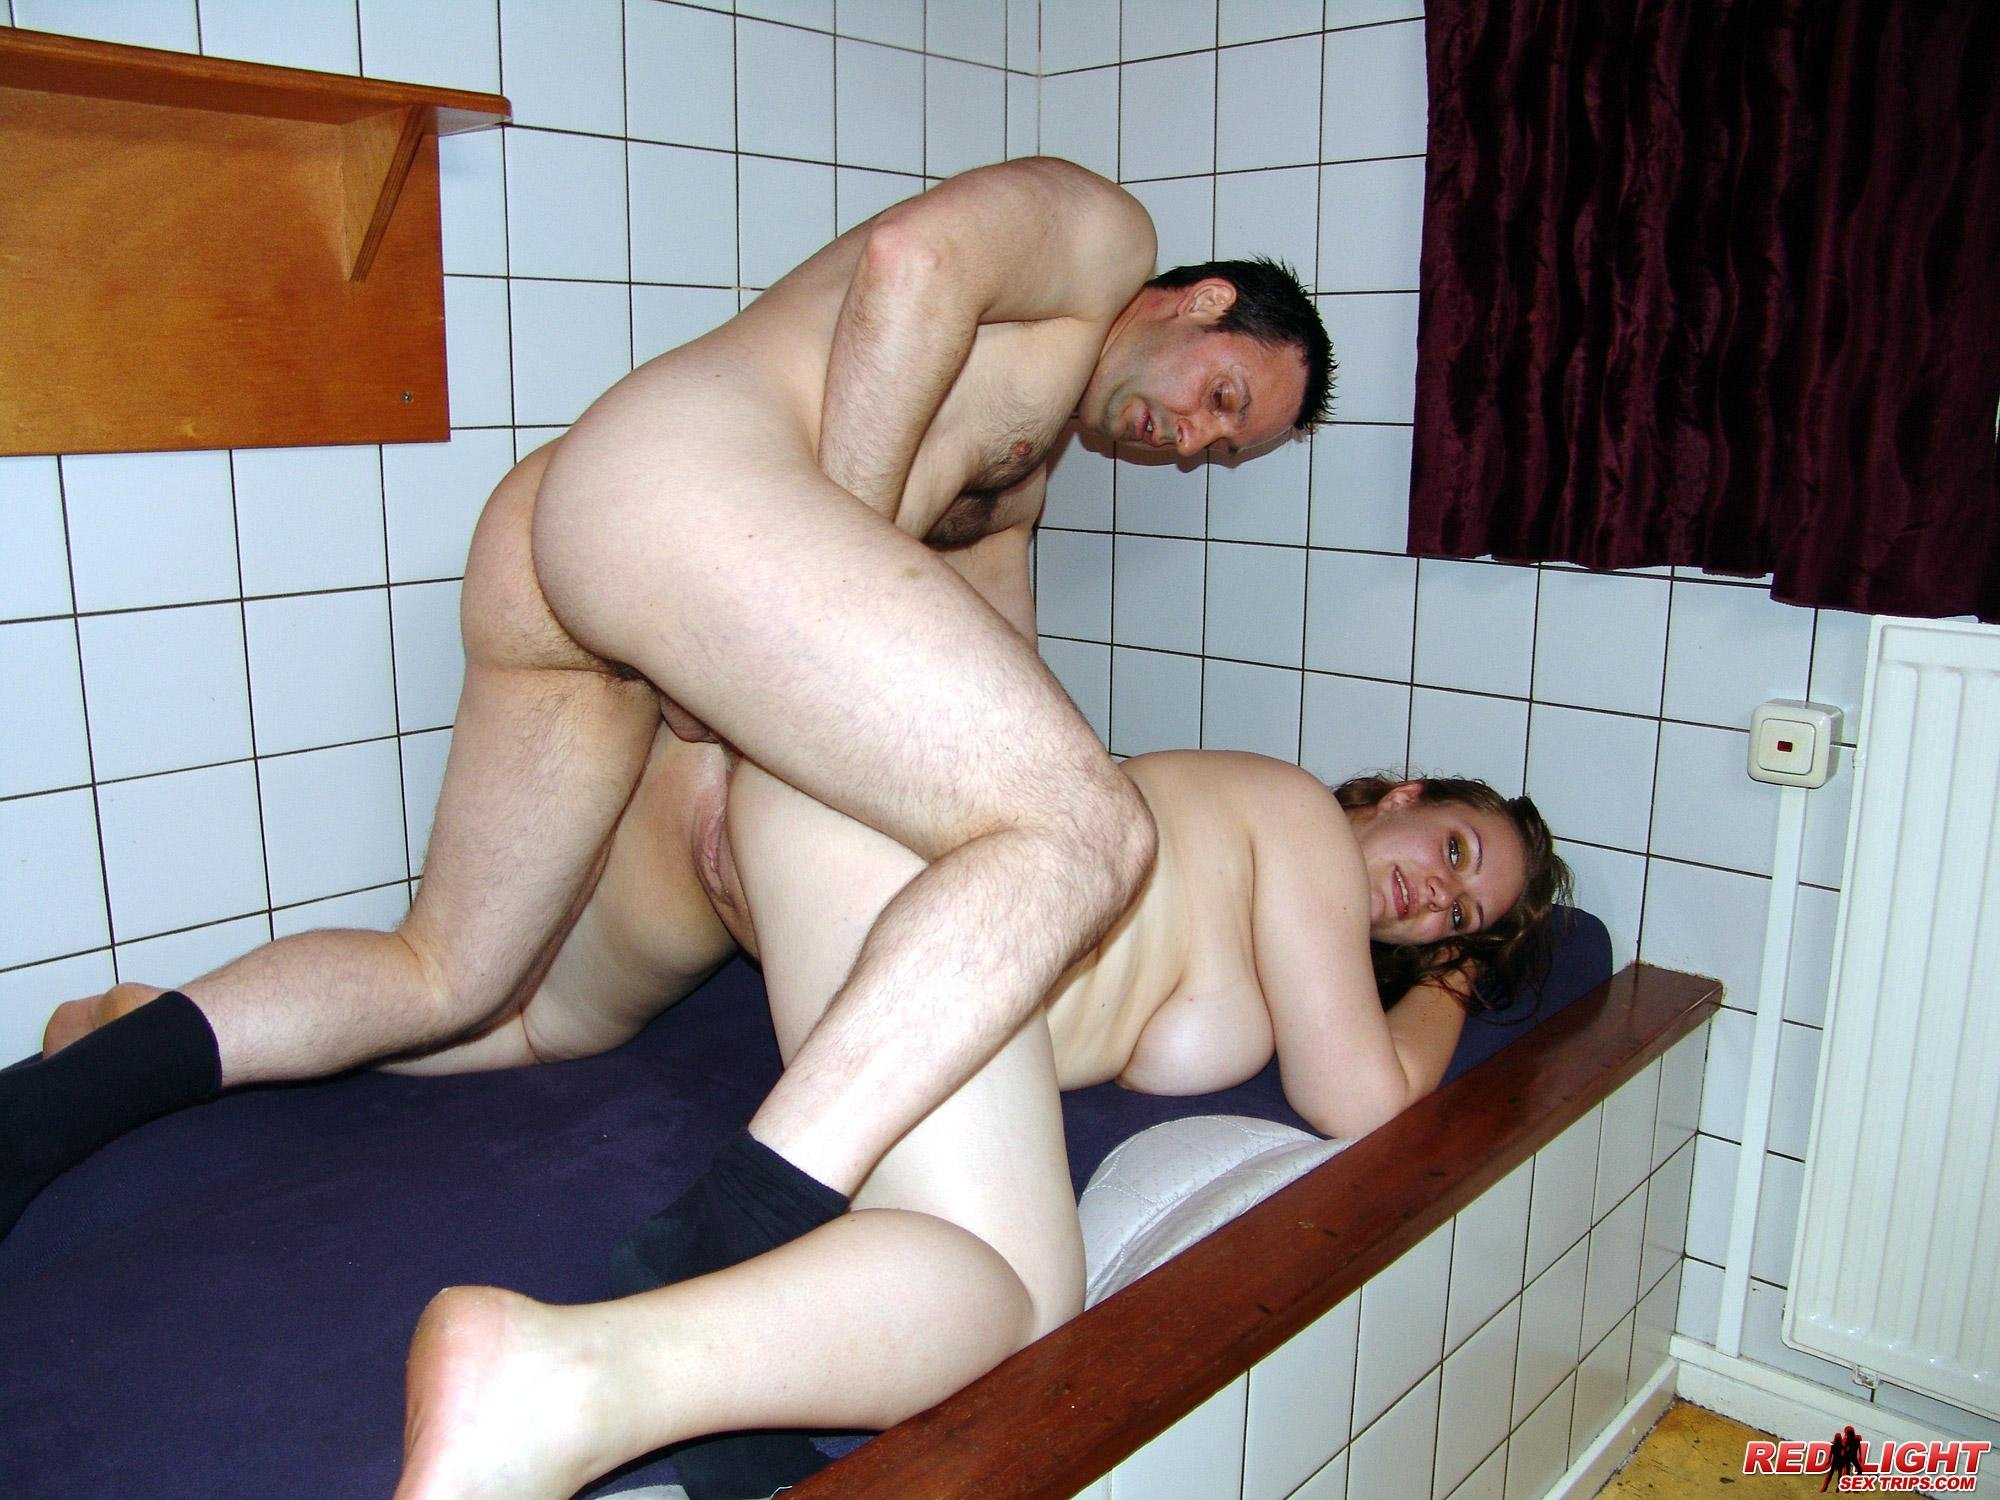 Son fuke mom without permission Amature sex vedio